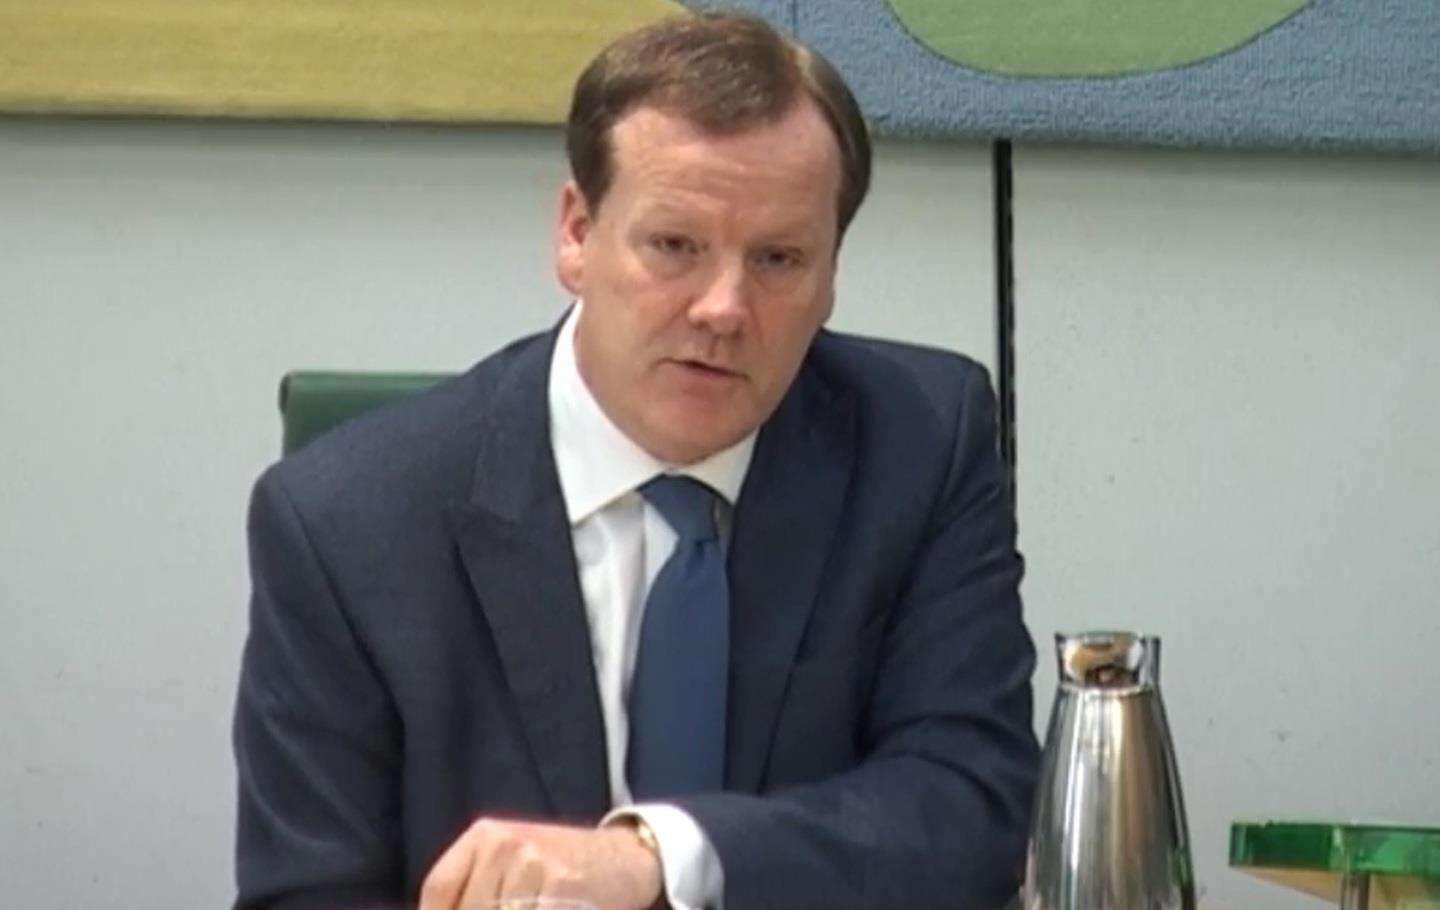 The Dover MP raises the case of constituent Pauline Creasey in Parliament. Picture: The Office of Charlie Elphicke MP